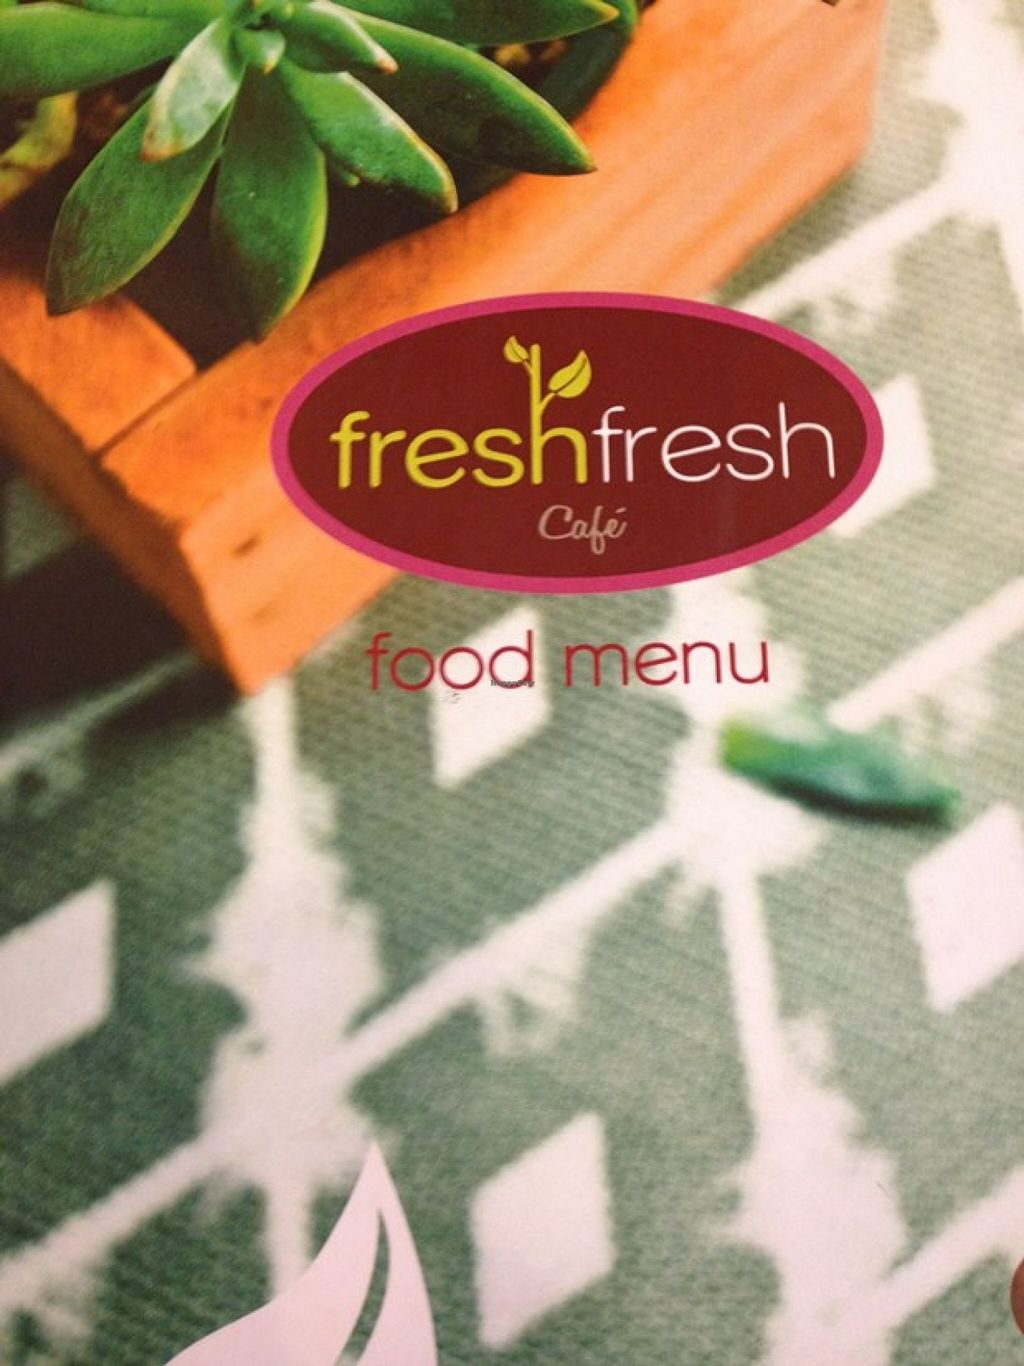 """Photo of Fresh Fresh  by <a href=""""/members/profile/Veg-Predilection"""">Veg-Predilection</a> <br/>Menu Cover <br/> October 20, 2015  - <a href='/contact/abuse/image/64742/121966'>Report</a>"""